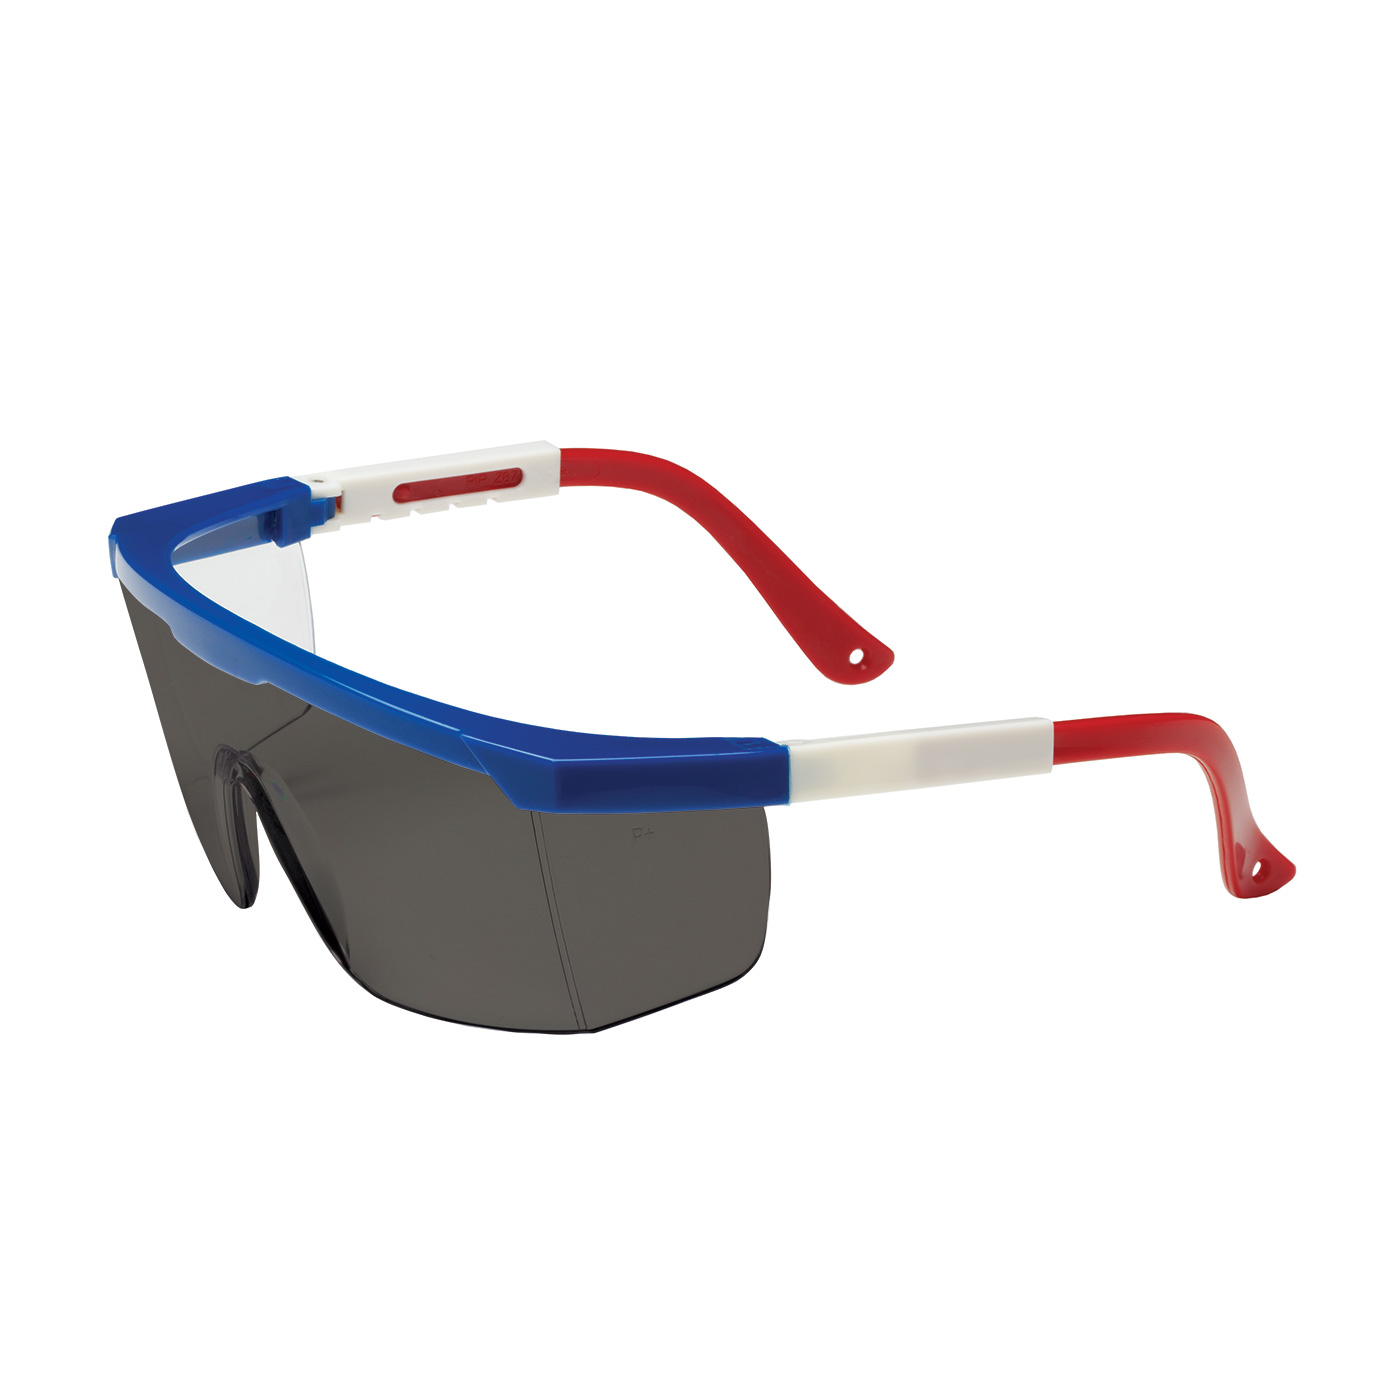 Semi-Rimless Safety Glasses with Red / White / Blue Frame, Gray Lens and Anti-Scratch Coating, Blue, OS